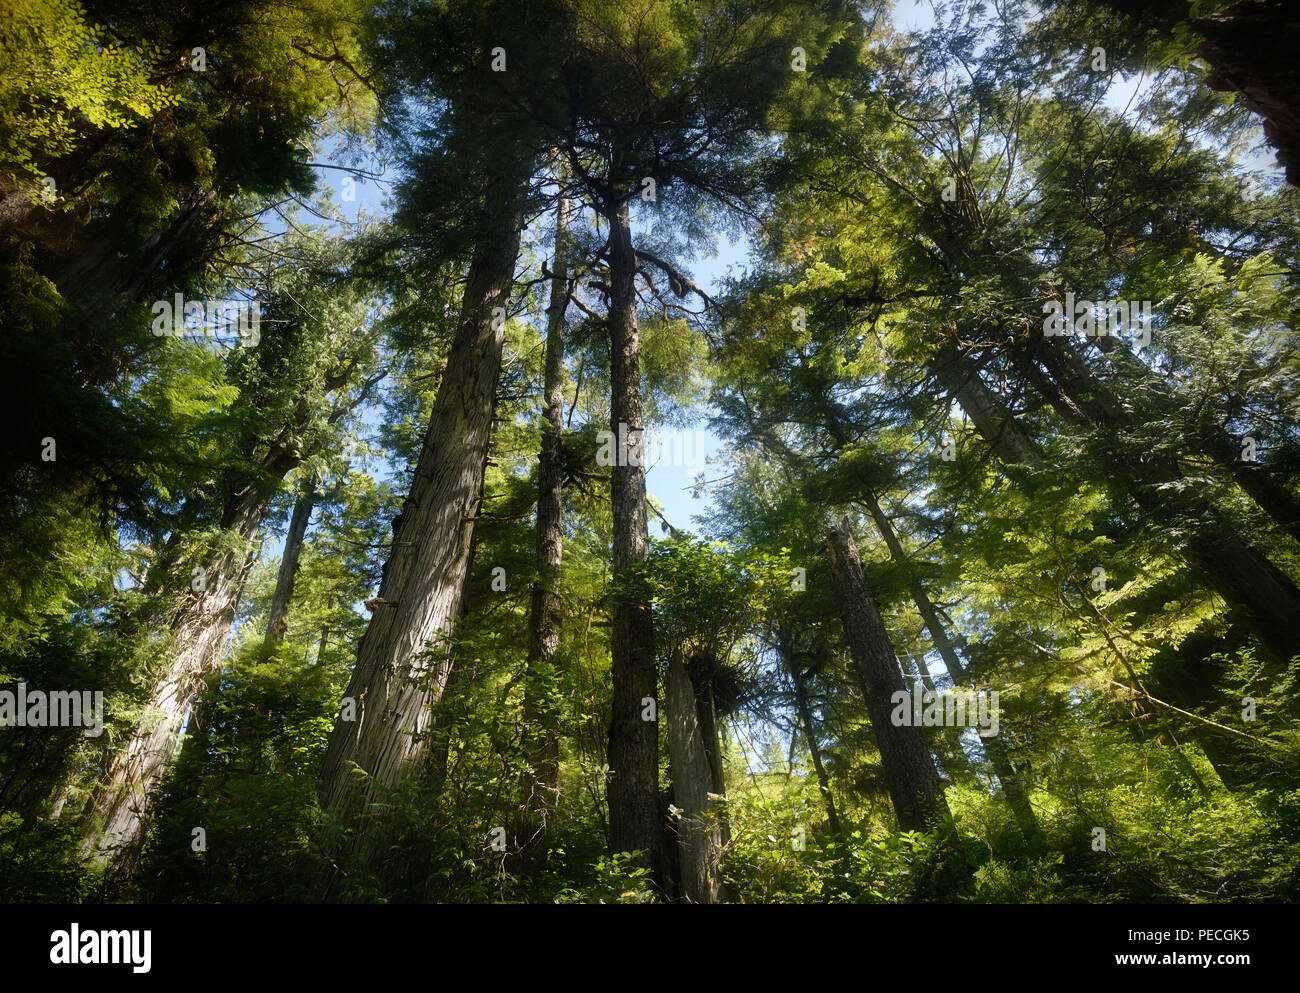 Beautiful tall Rainforest Douglas Fir trees covering the sky at the Pacific Rim National Park Reserve in Tofino, Vancouver Island, BC, Canada. - Stock Image